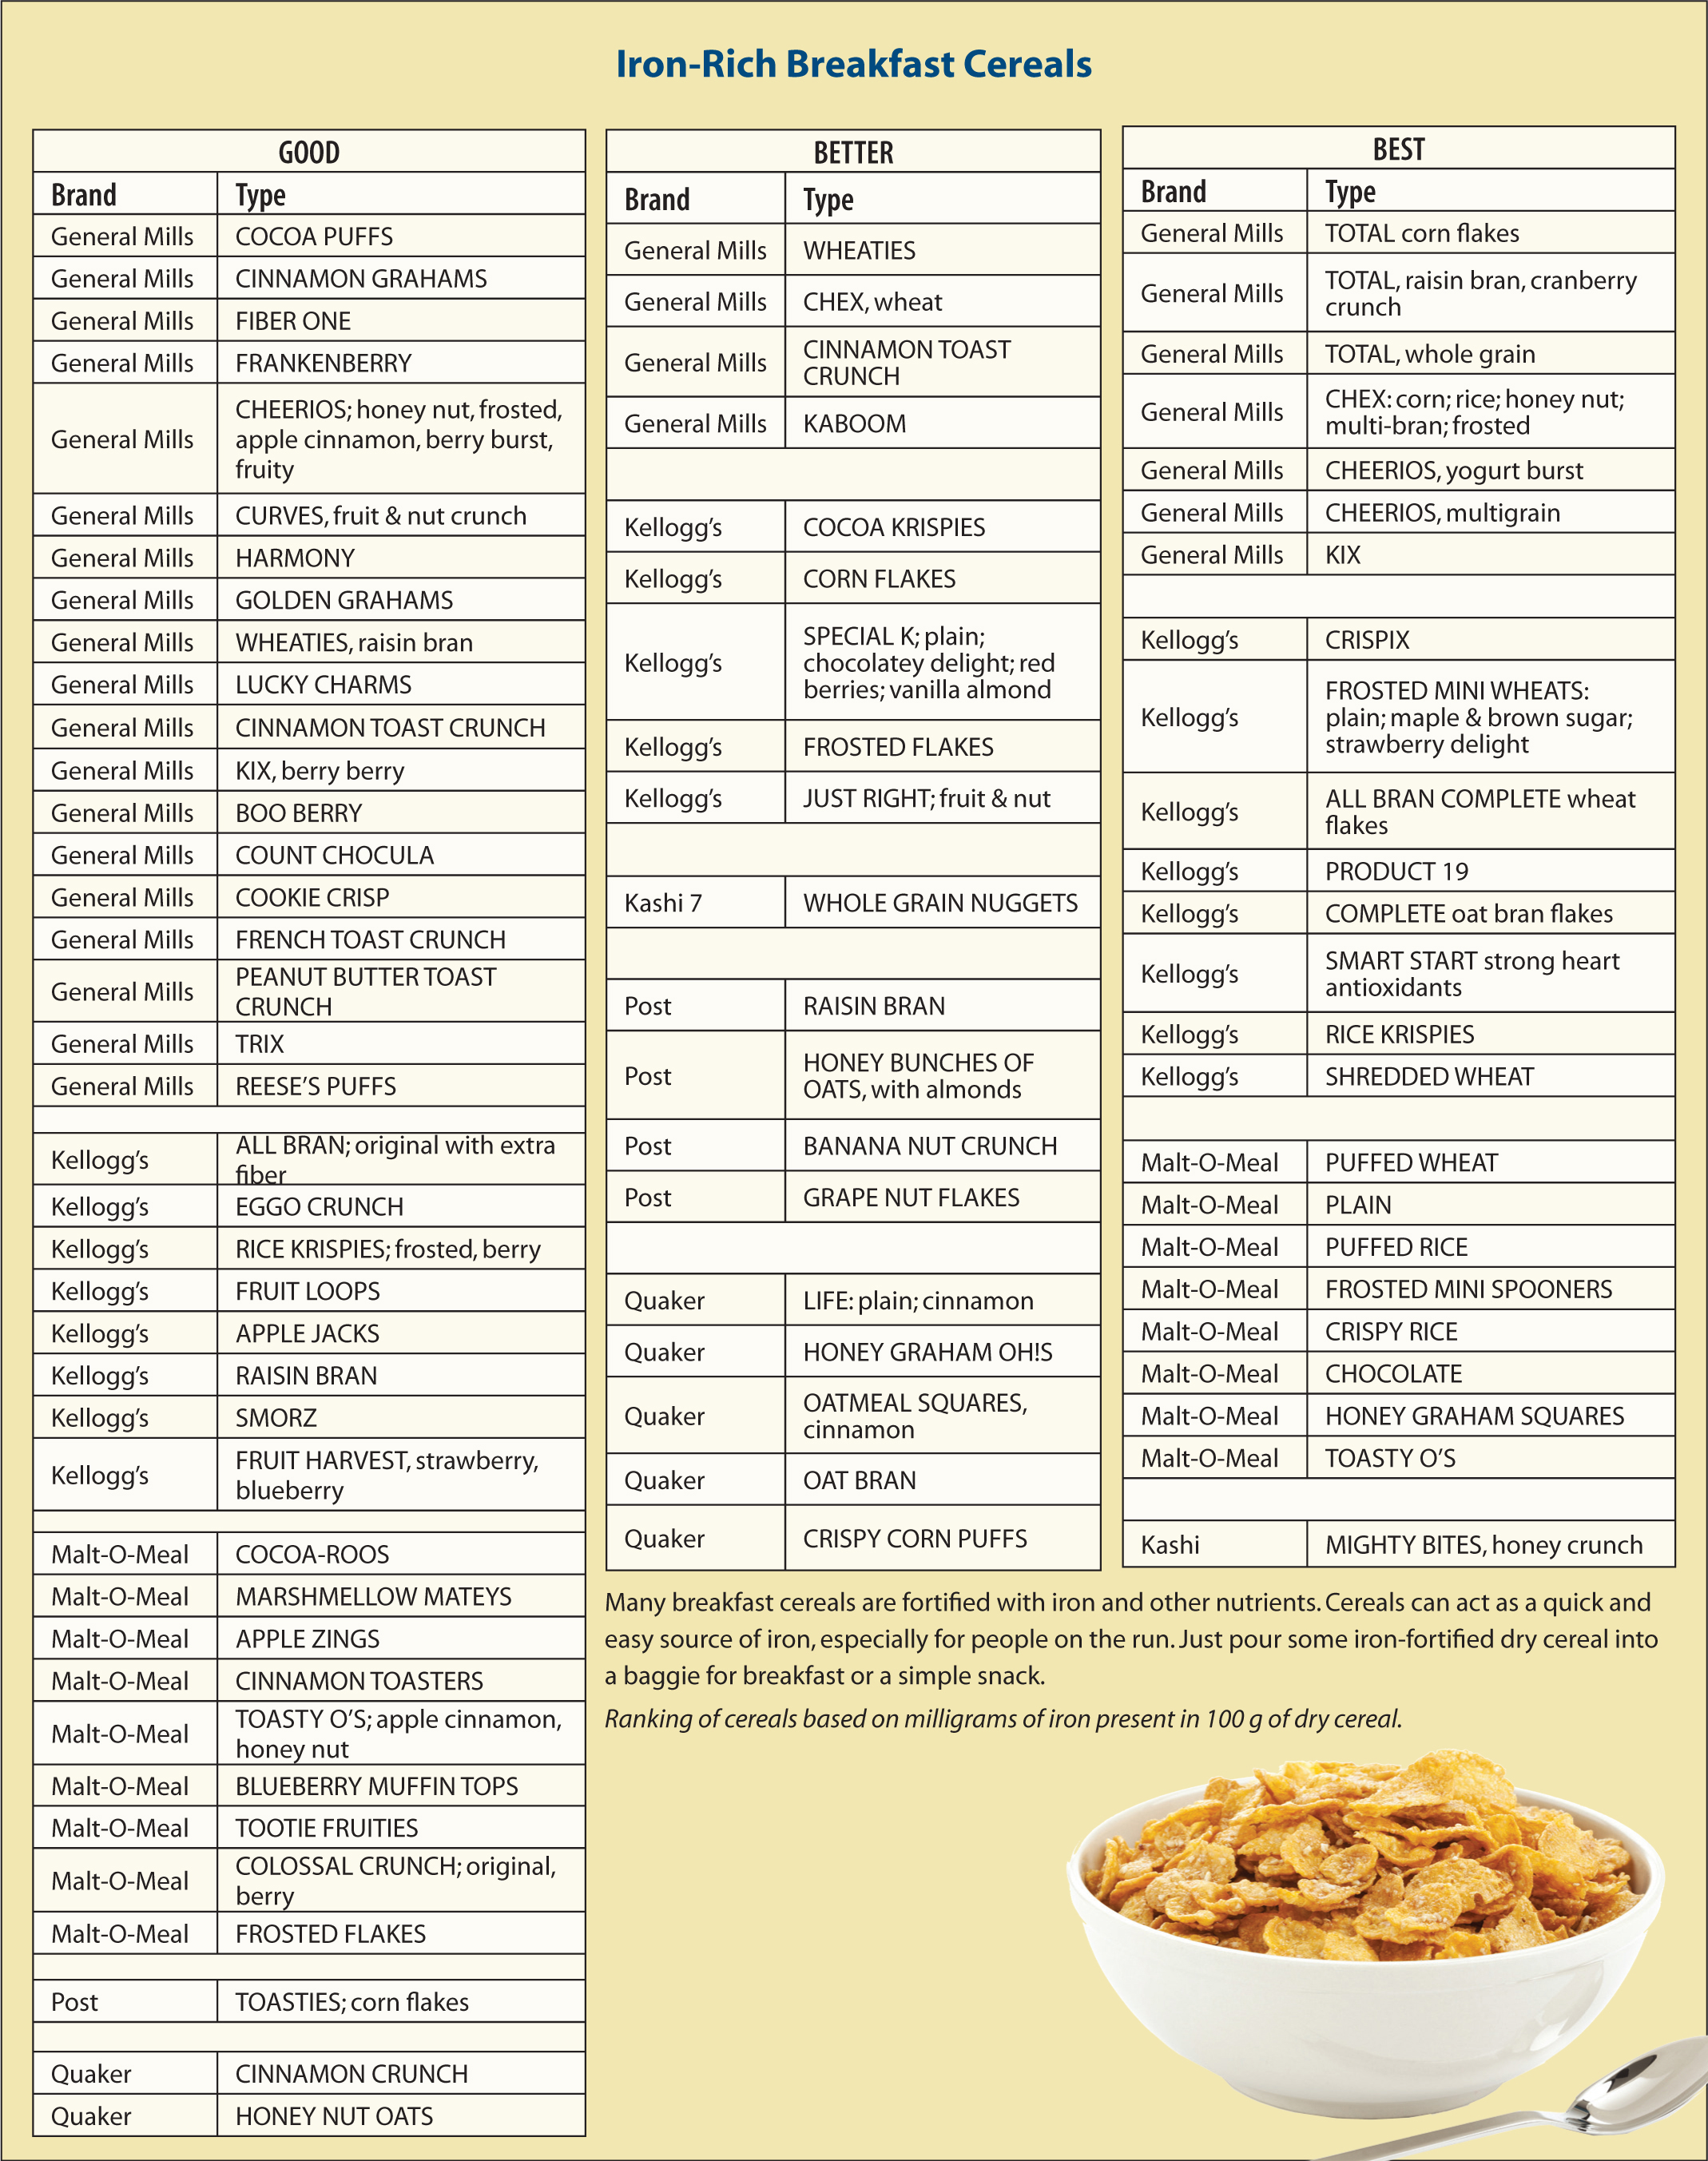 Fact sheet for patients and their families showing iron-fortified breakfast cereals.Figure courtesy of Linda P. Grooms, RN. Reprinted with permission.